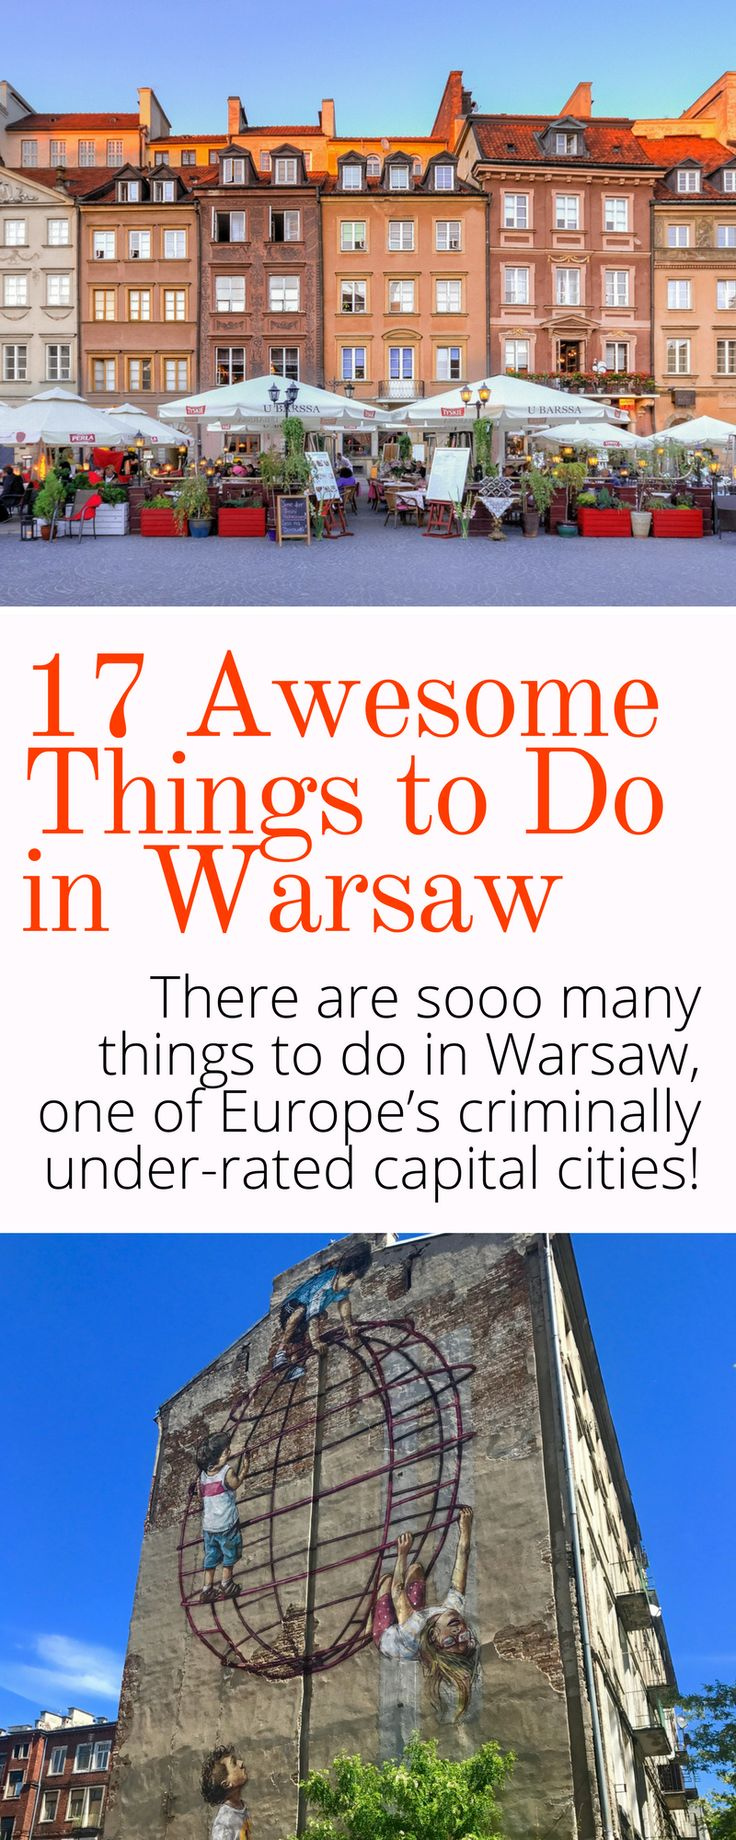 17 Seriously Awesome Things to Do in Warsaw Poland - Hot Chocolate, Beaches, Street Art, History, and more! Click here to discover why Warsaw Poland is totally underrated!